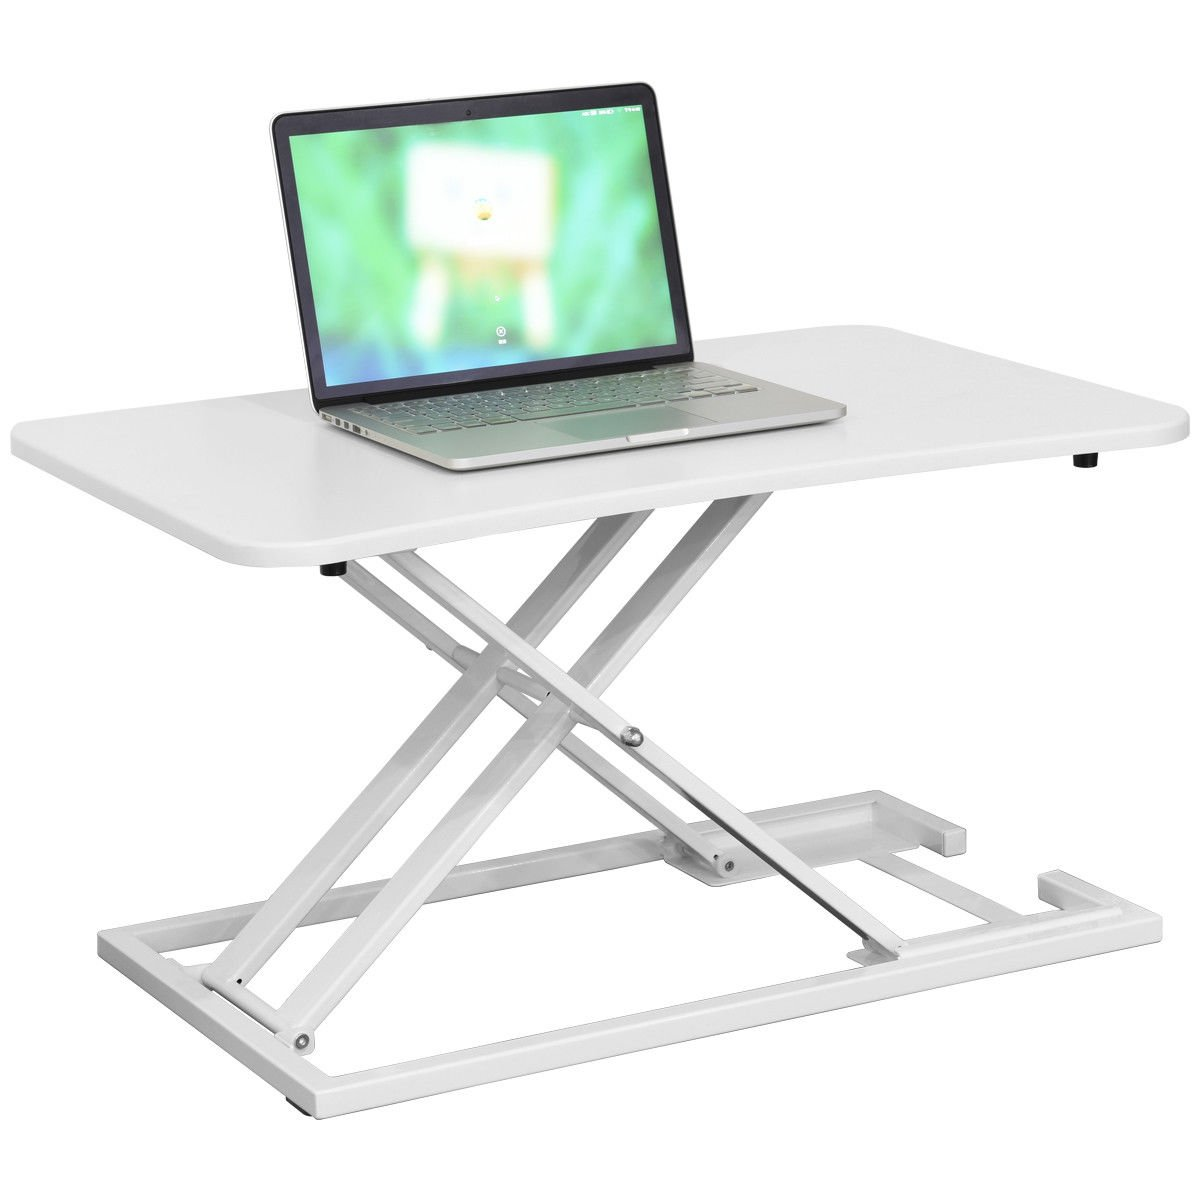 Height Adjustable Standing Laptop Notebook Convertible Desk Computer Workstation Study Writing Multifunction Multipurpose Table Spacious Work Area Innovative Air Pump System Allows For Easy Adjustment